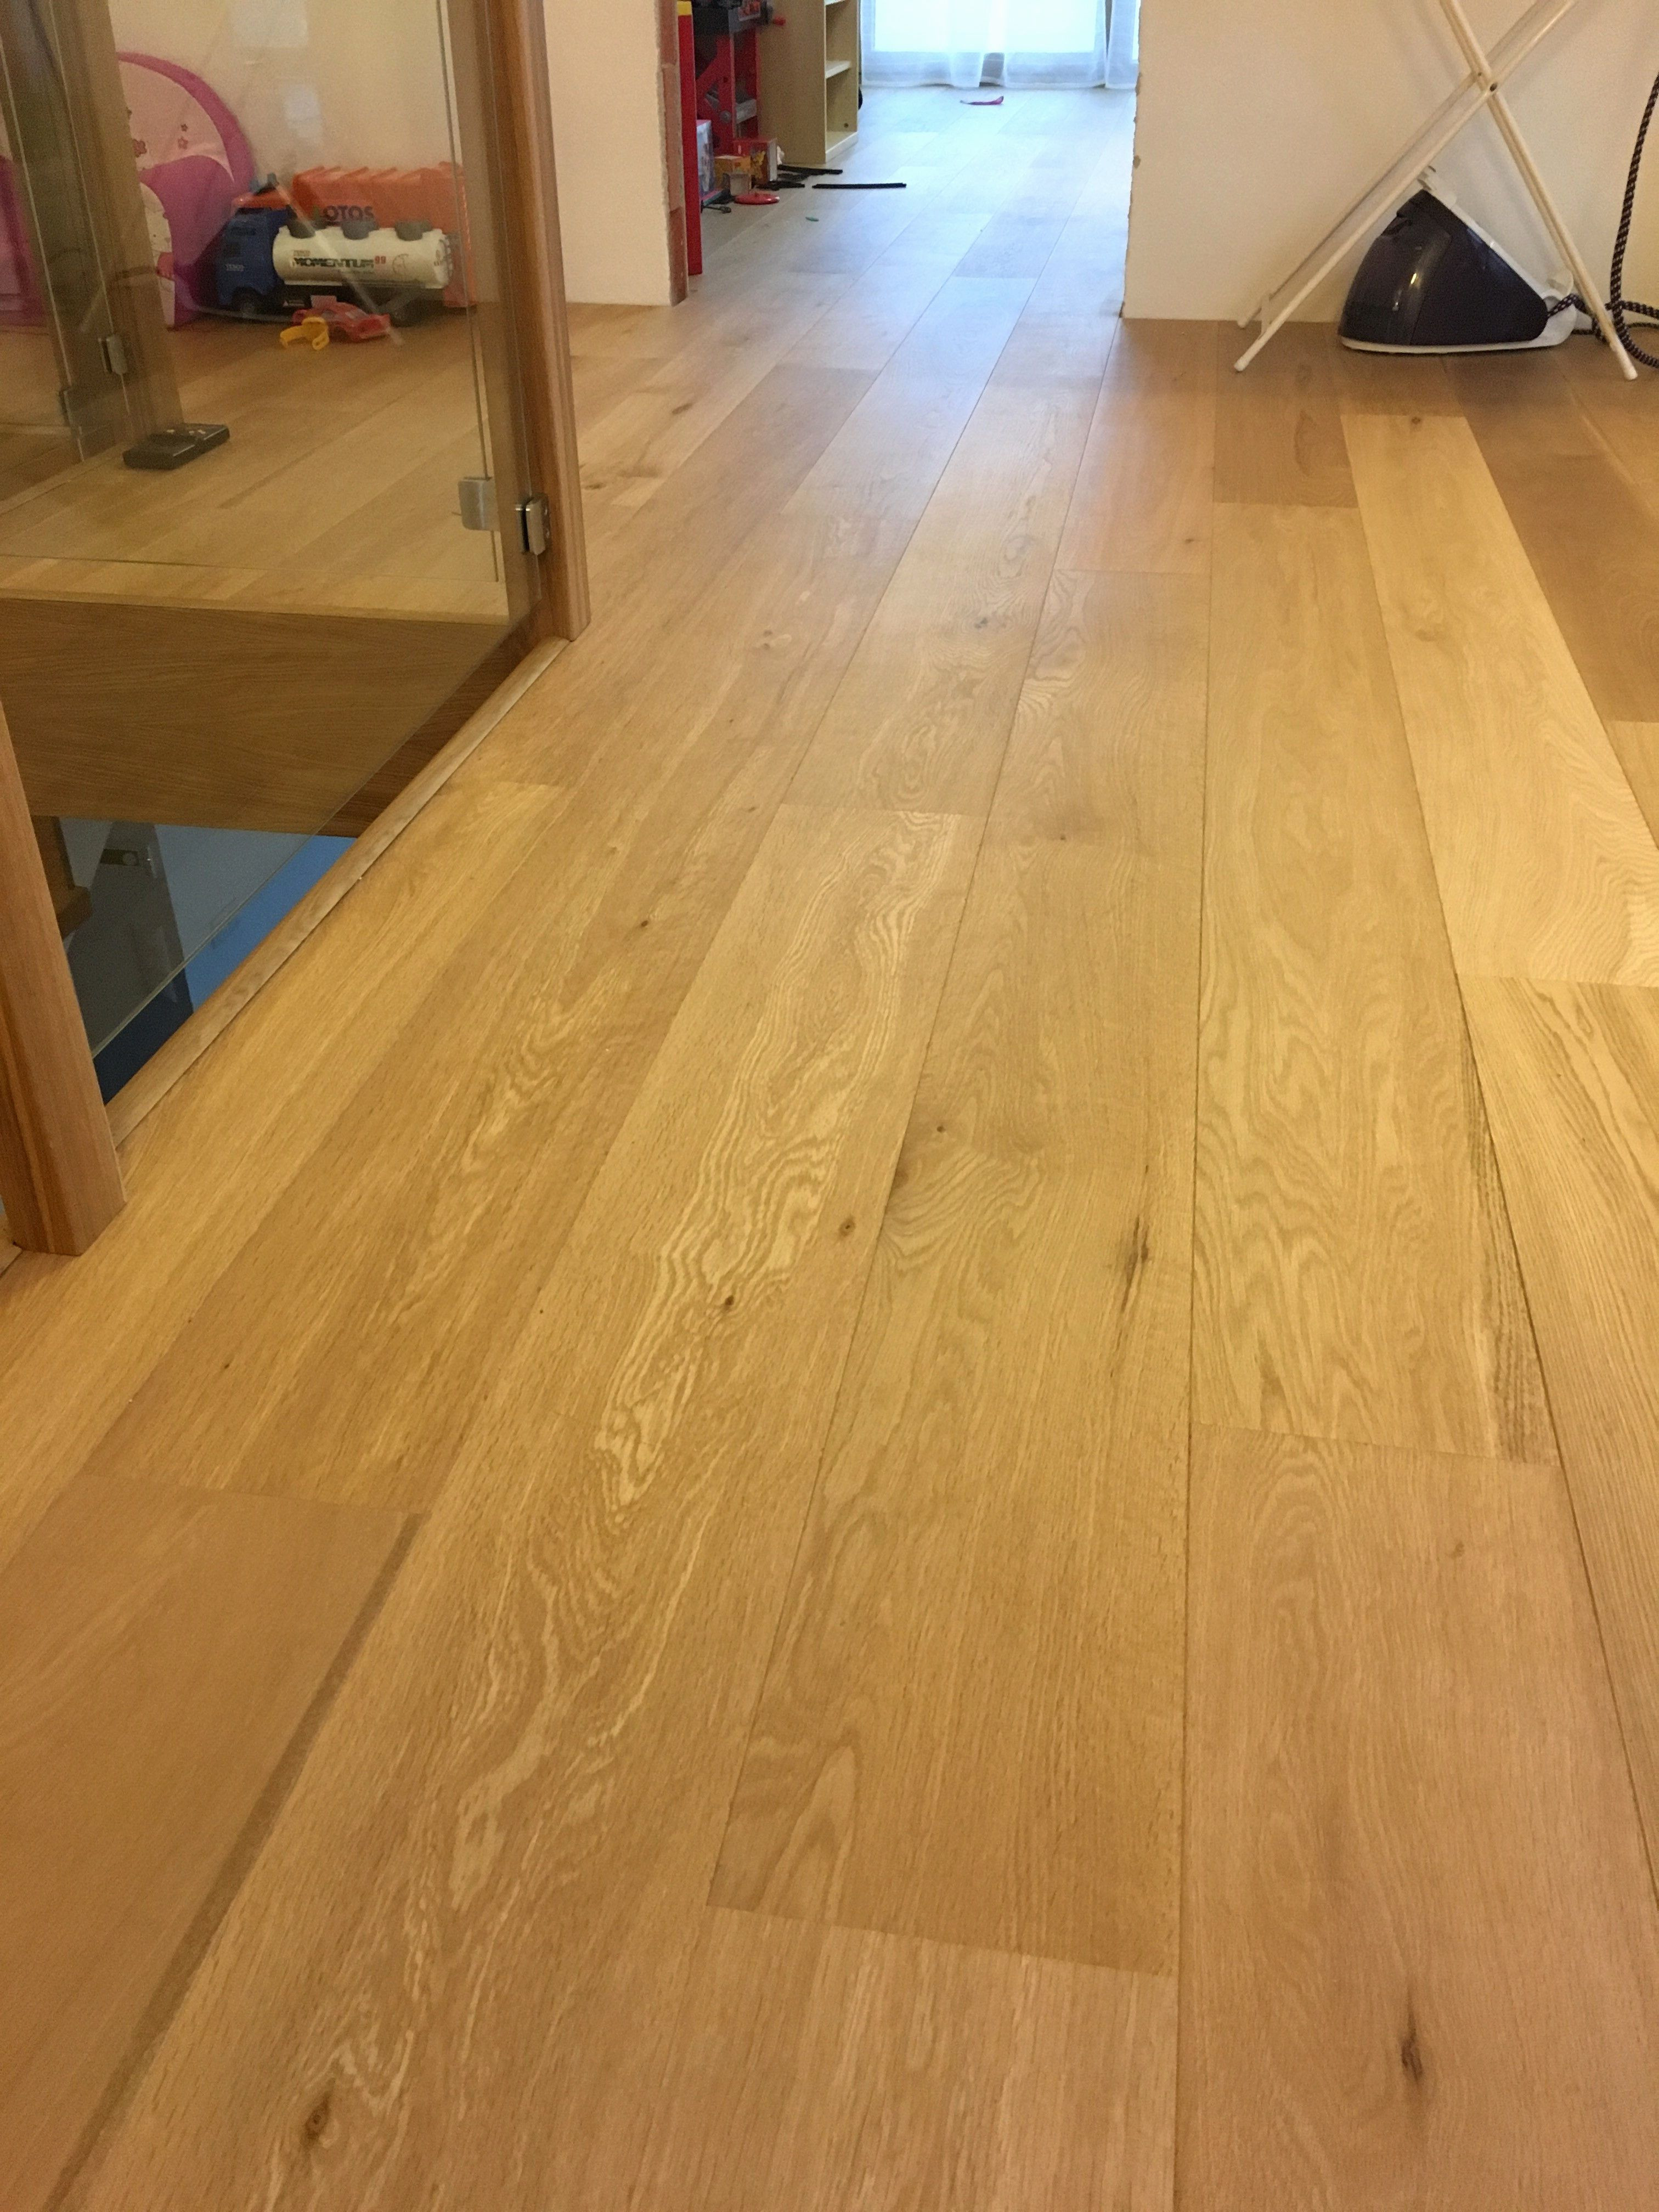 hardwood flooring distributors near me of laminate or wood flooring floor plan ideas intended for hardwood flooring vs laminate beautiful naturalny dub od belgickaho va½robcu lamett hardwood flooring vs laminate